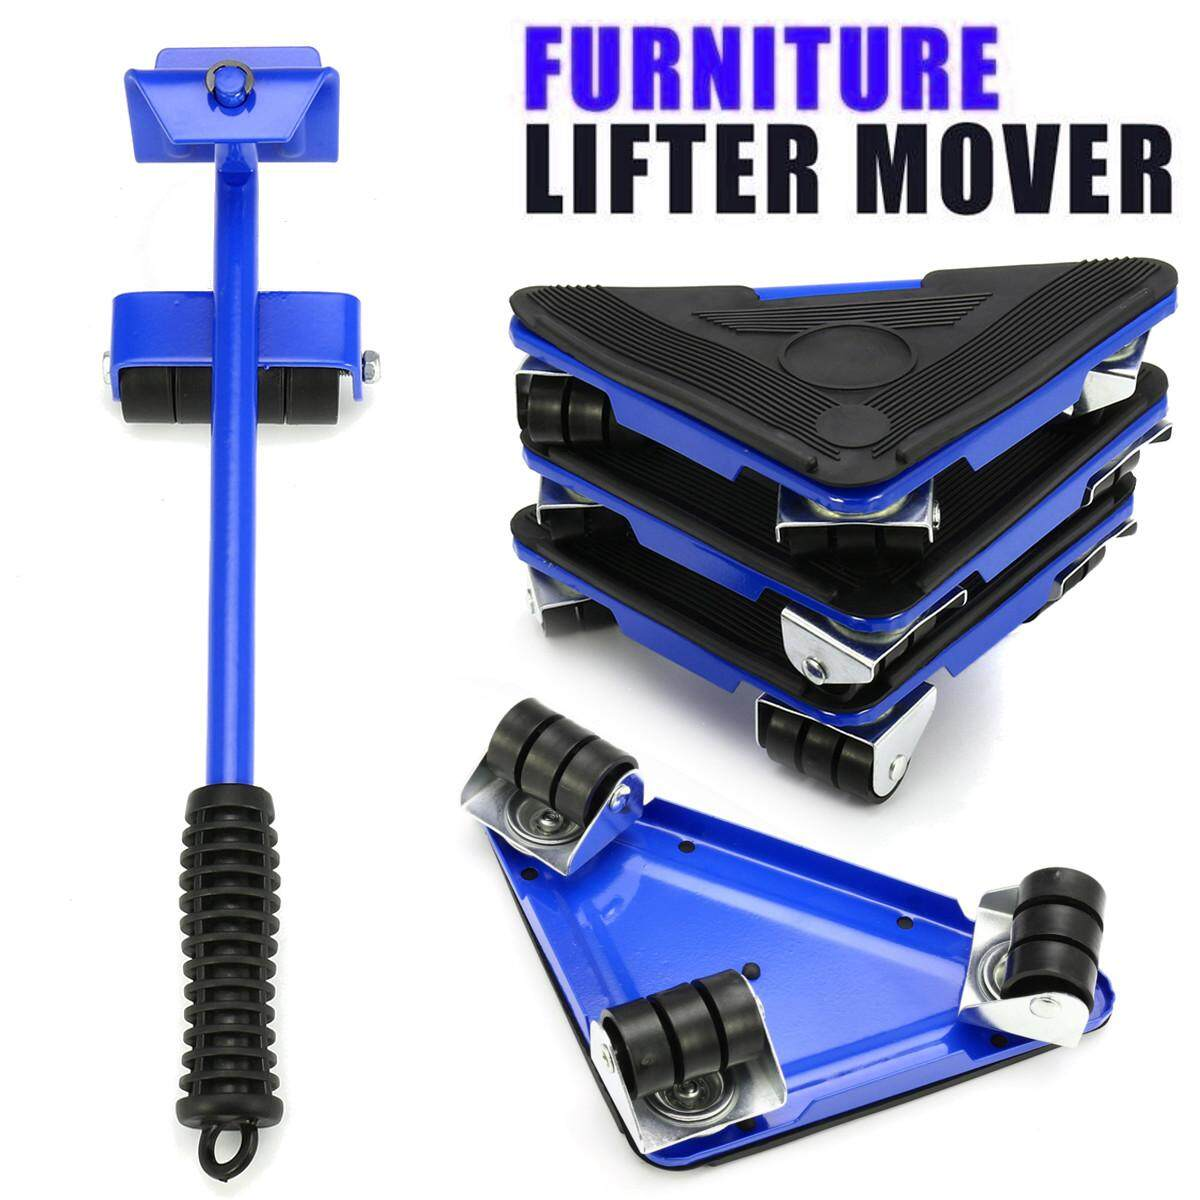 5PC Furniture Lifter Moves Triple Wheels Mover Sliders Kit Home Moving System AU